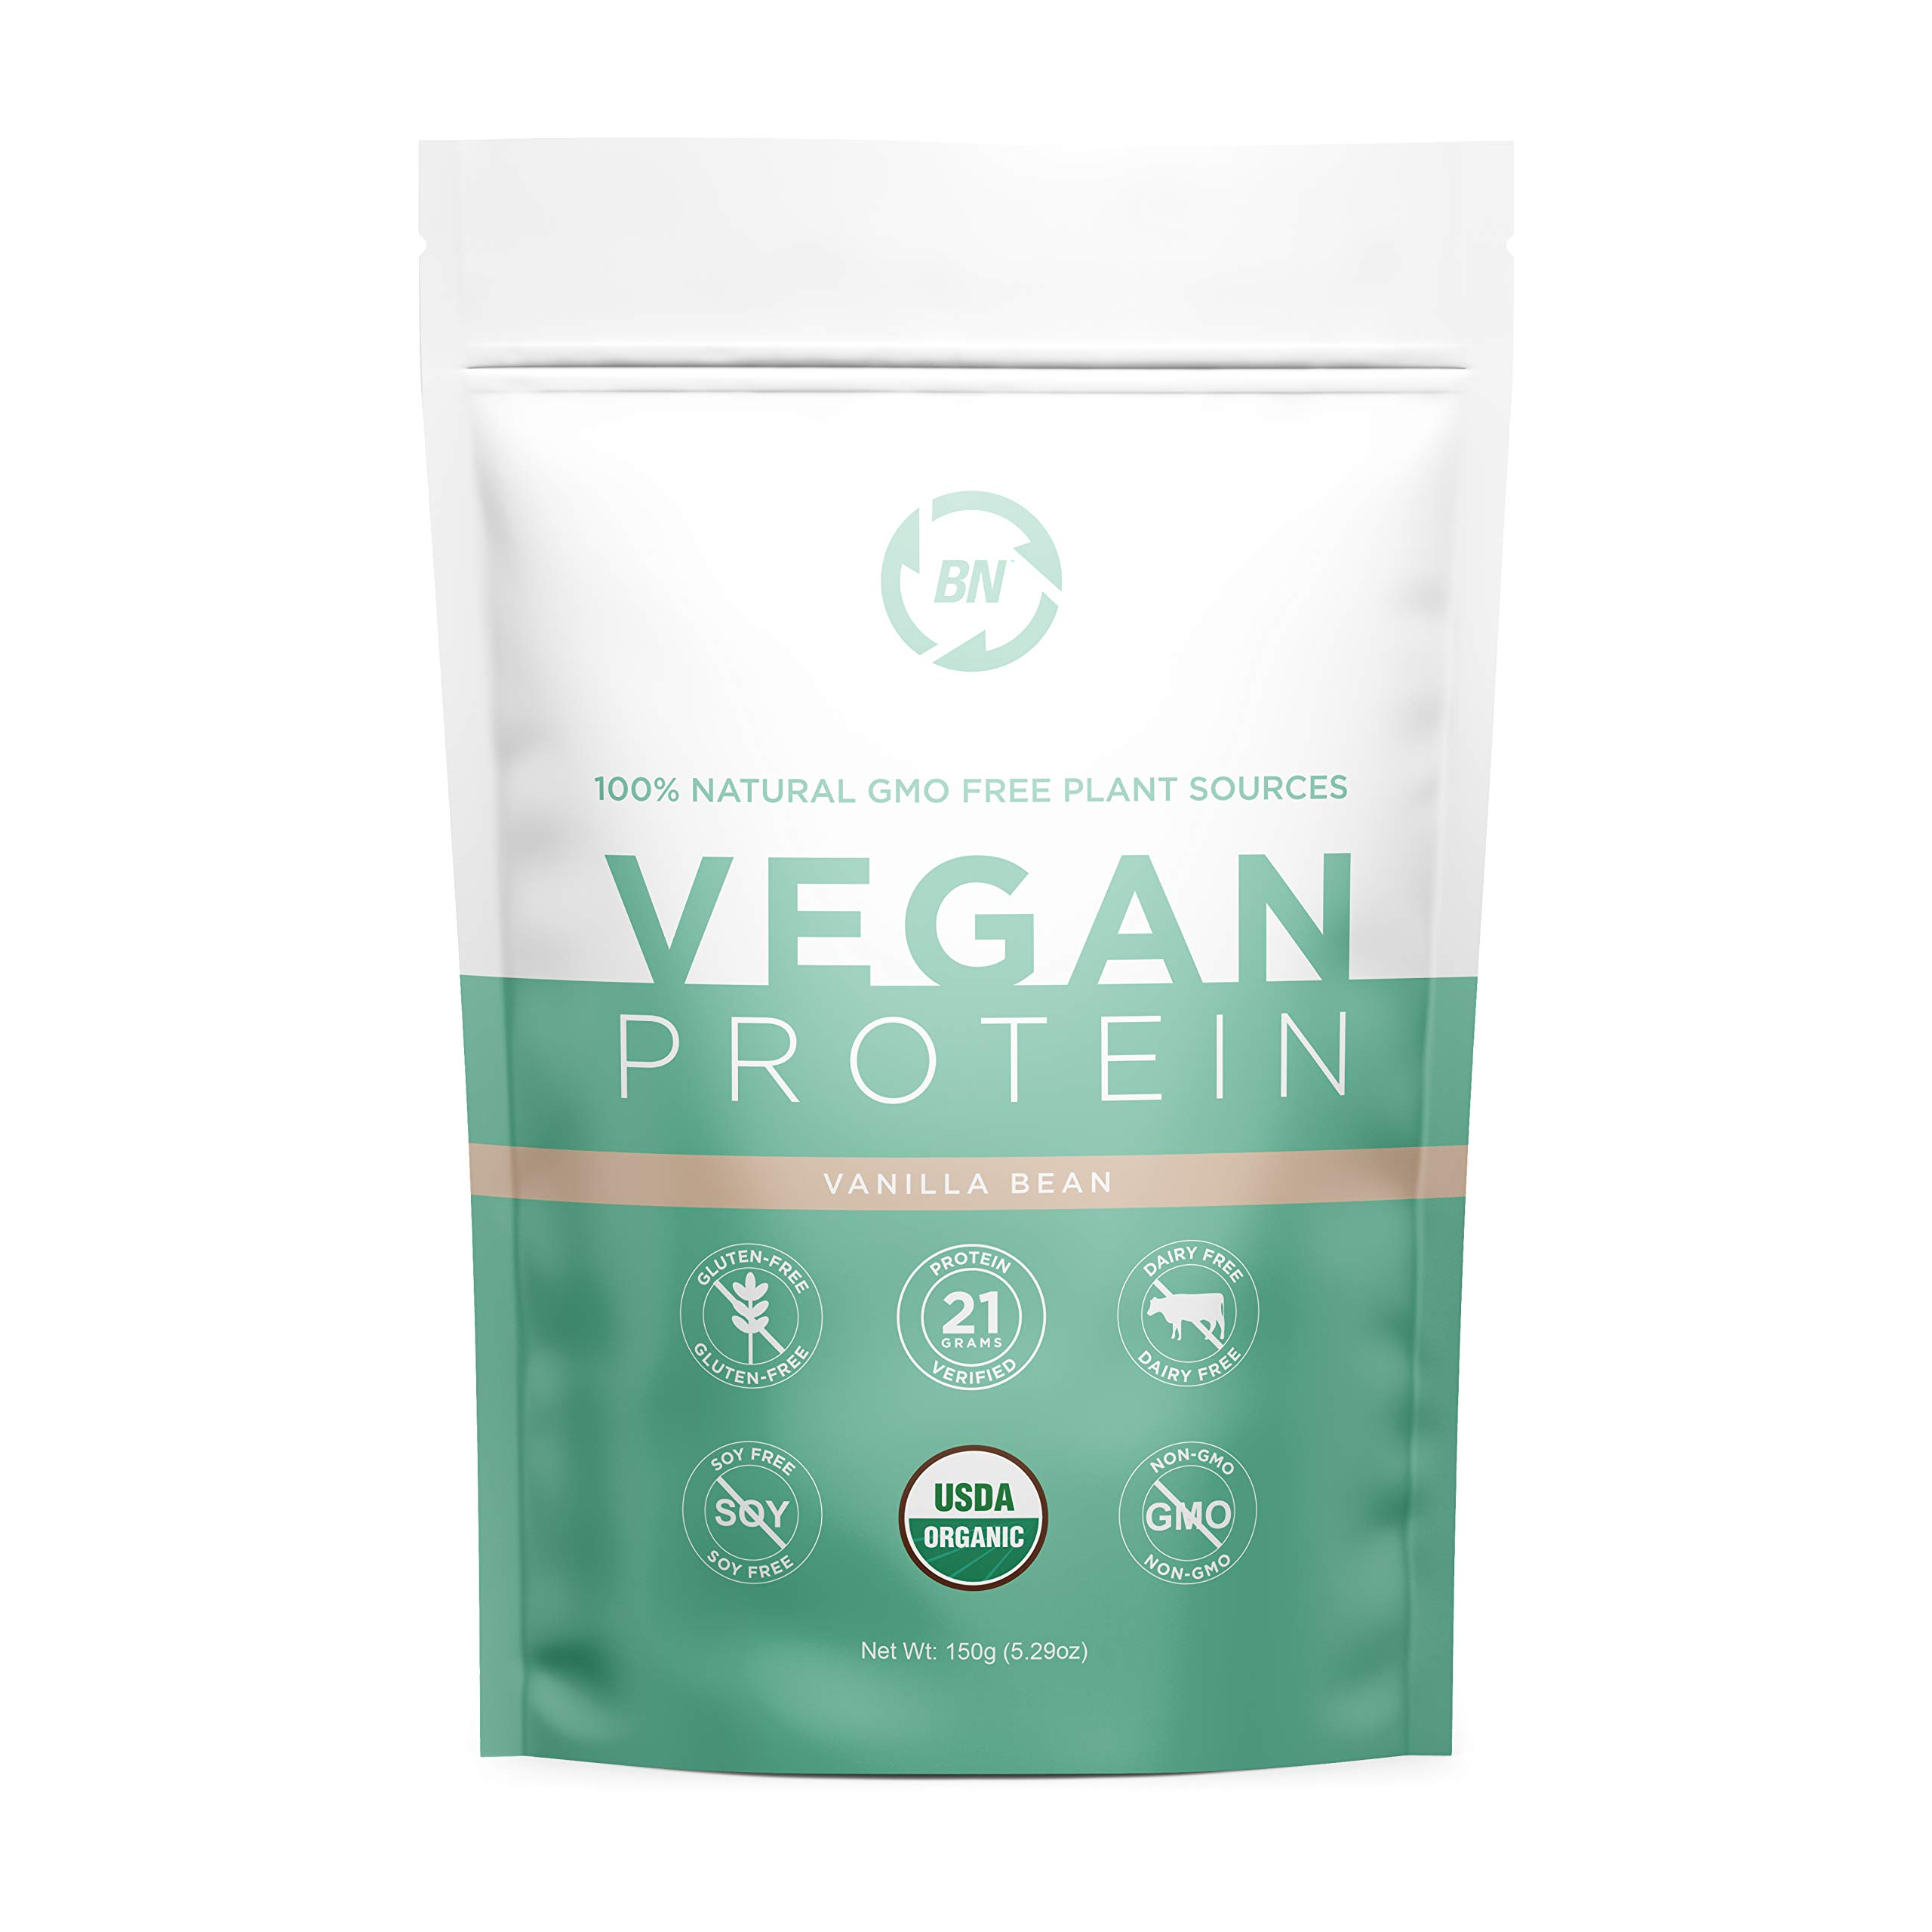 Organic Vegan Protein Powder Trial Size - Plant Based Protein Powder Blend with Pea Protein and Added Organic Omega's - Raw, Non Dairy, Gluten & Soy Free, Non GMO (Vanilla, 5 Serving)